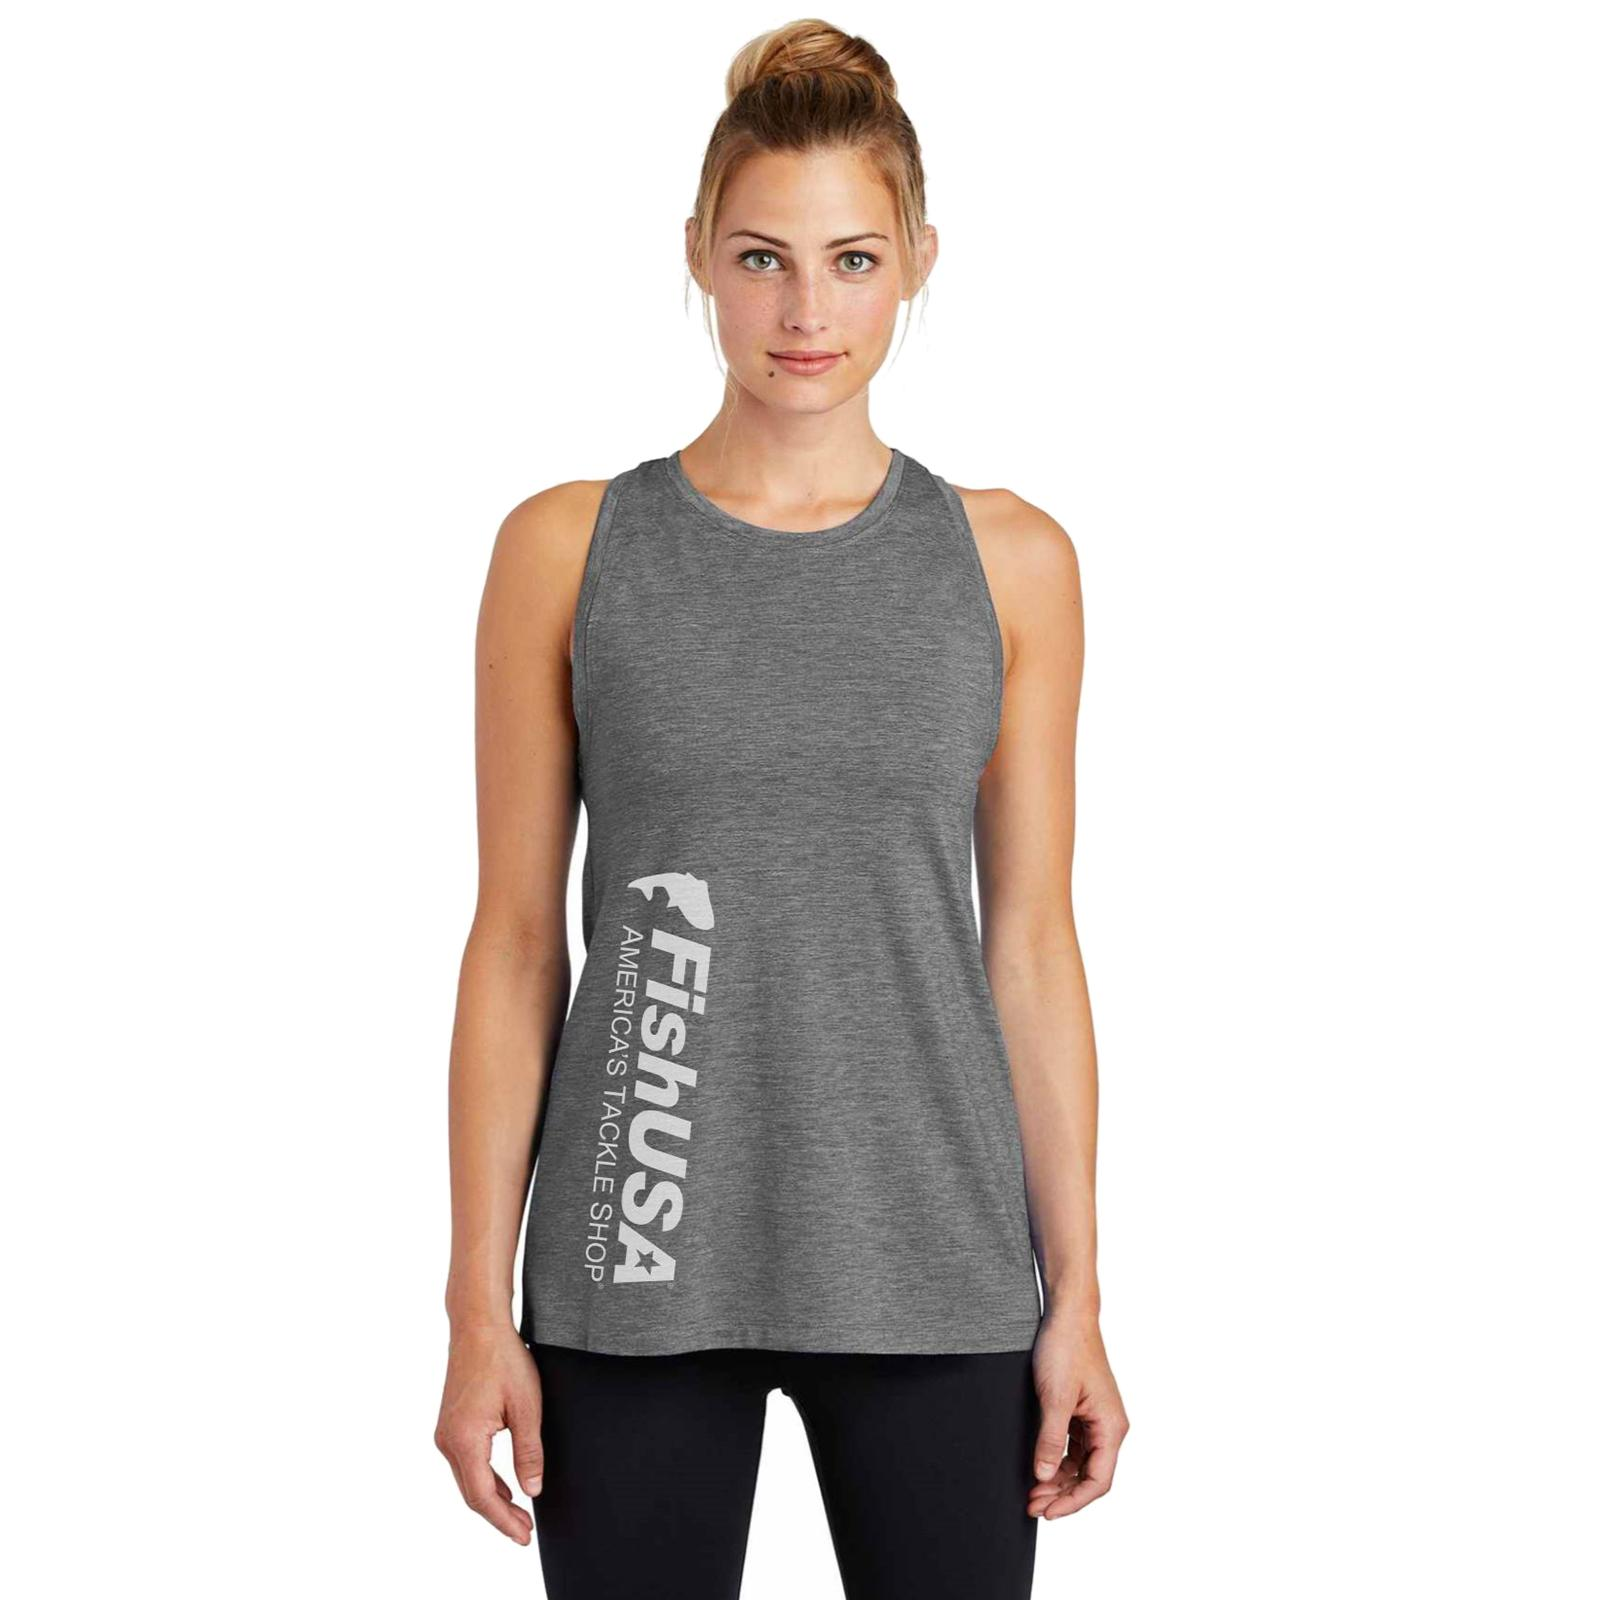 FishUSA Women's Logo Tank Top on Model